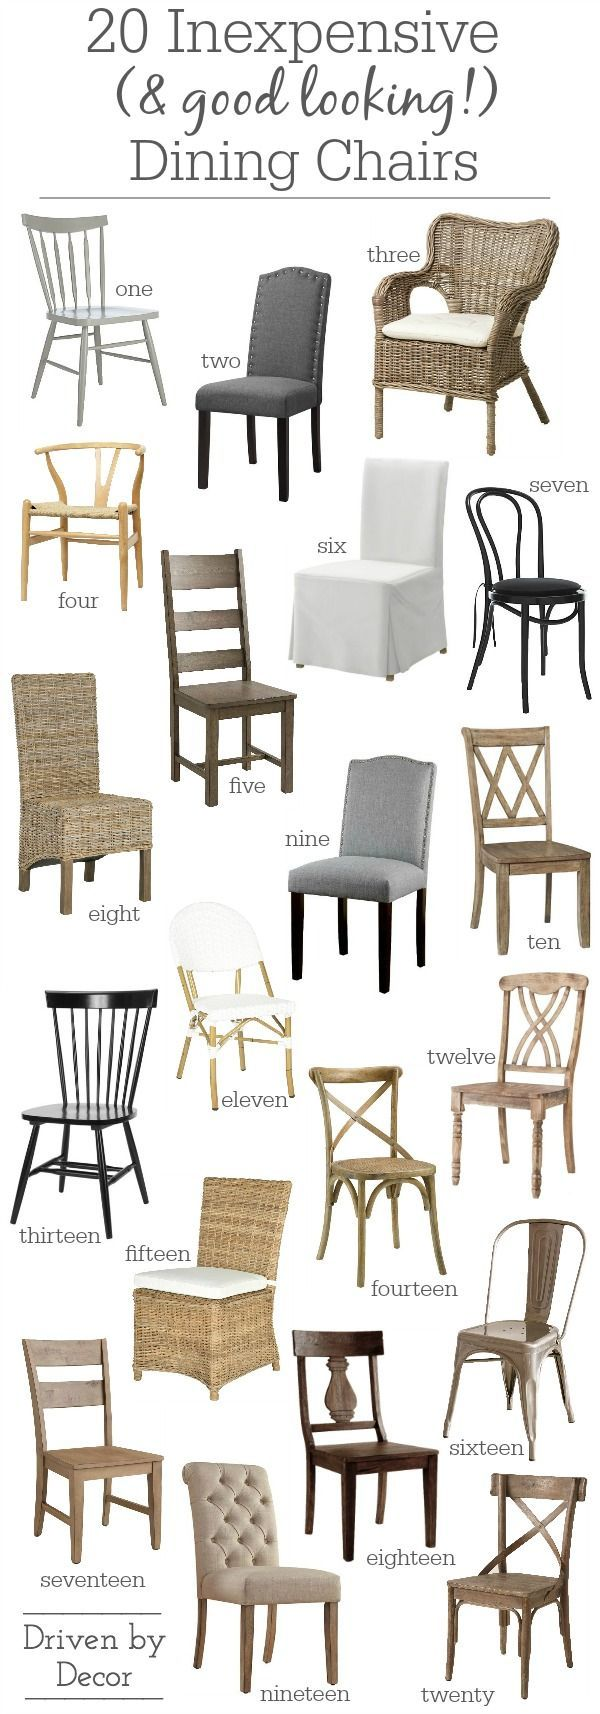 15 Inexpensive Dining Chairs That Don T Look Cheap Driven By Decor Affordable Dining Room Chairs Affordable Dining Room Dining Chairs